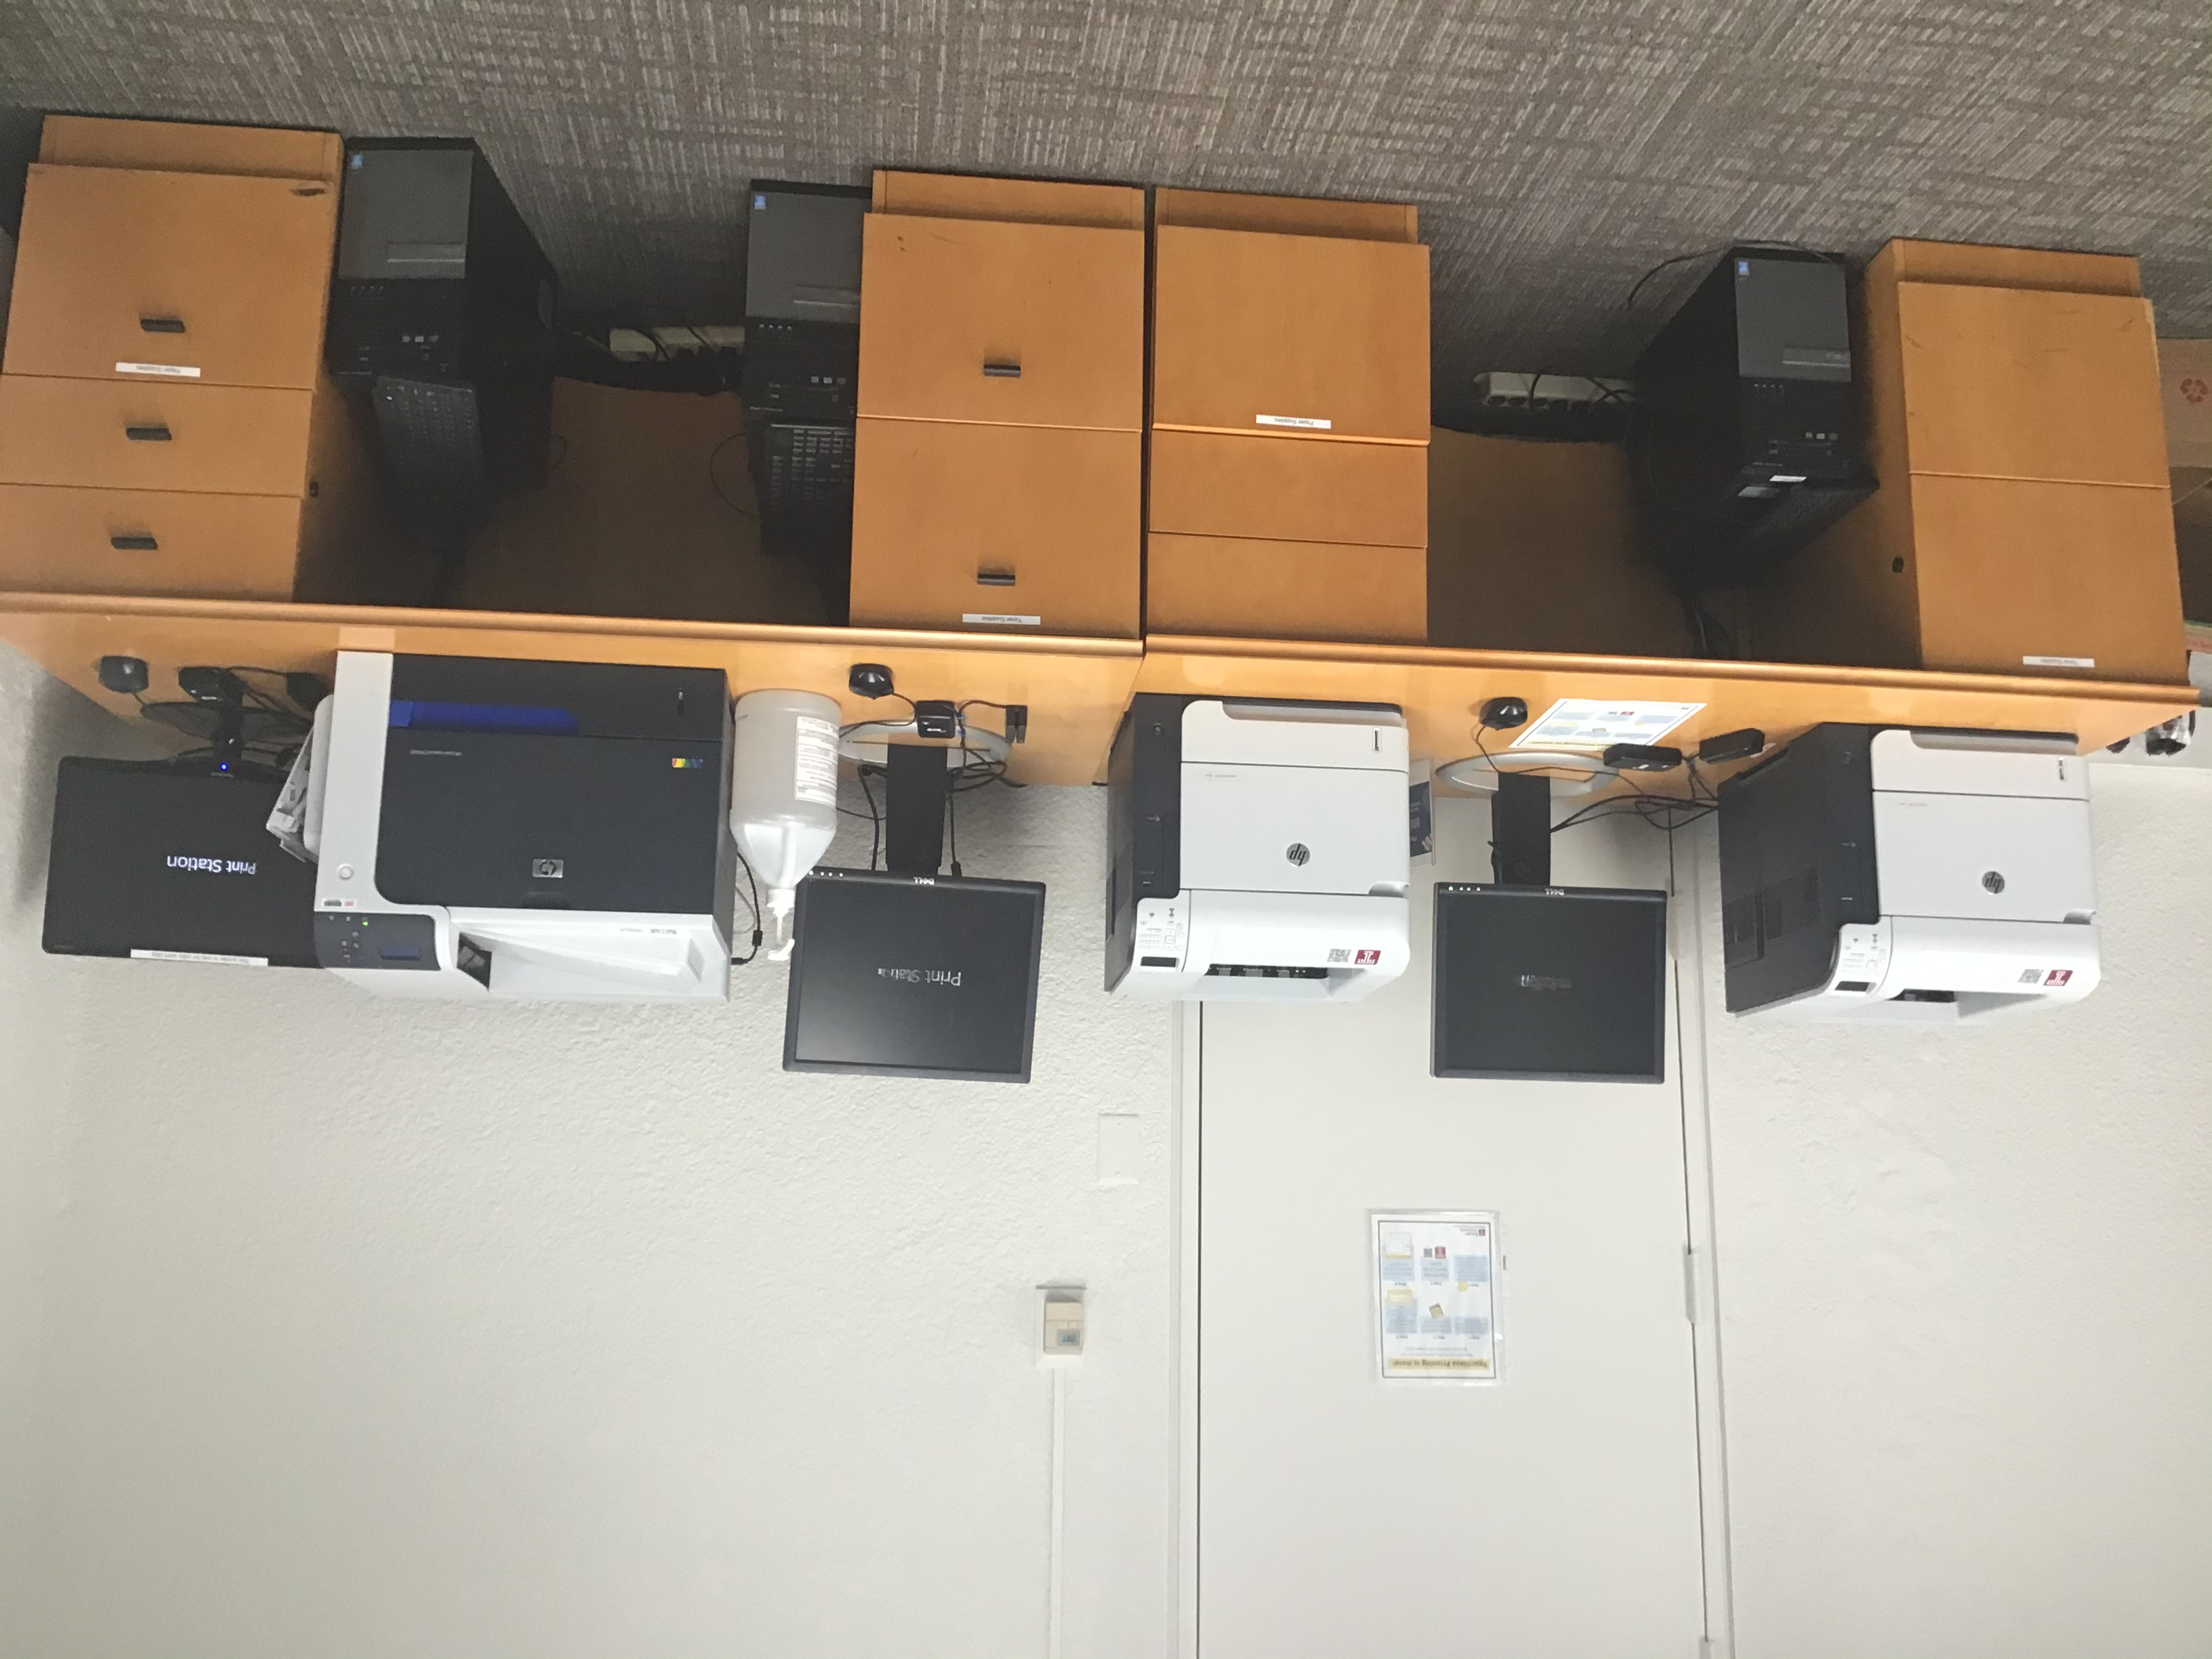 Three Printers, two are black and white, the third prints in color